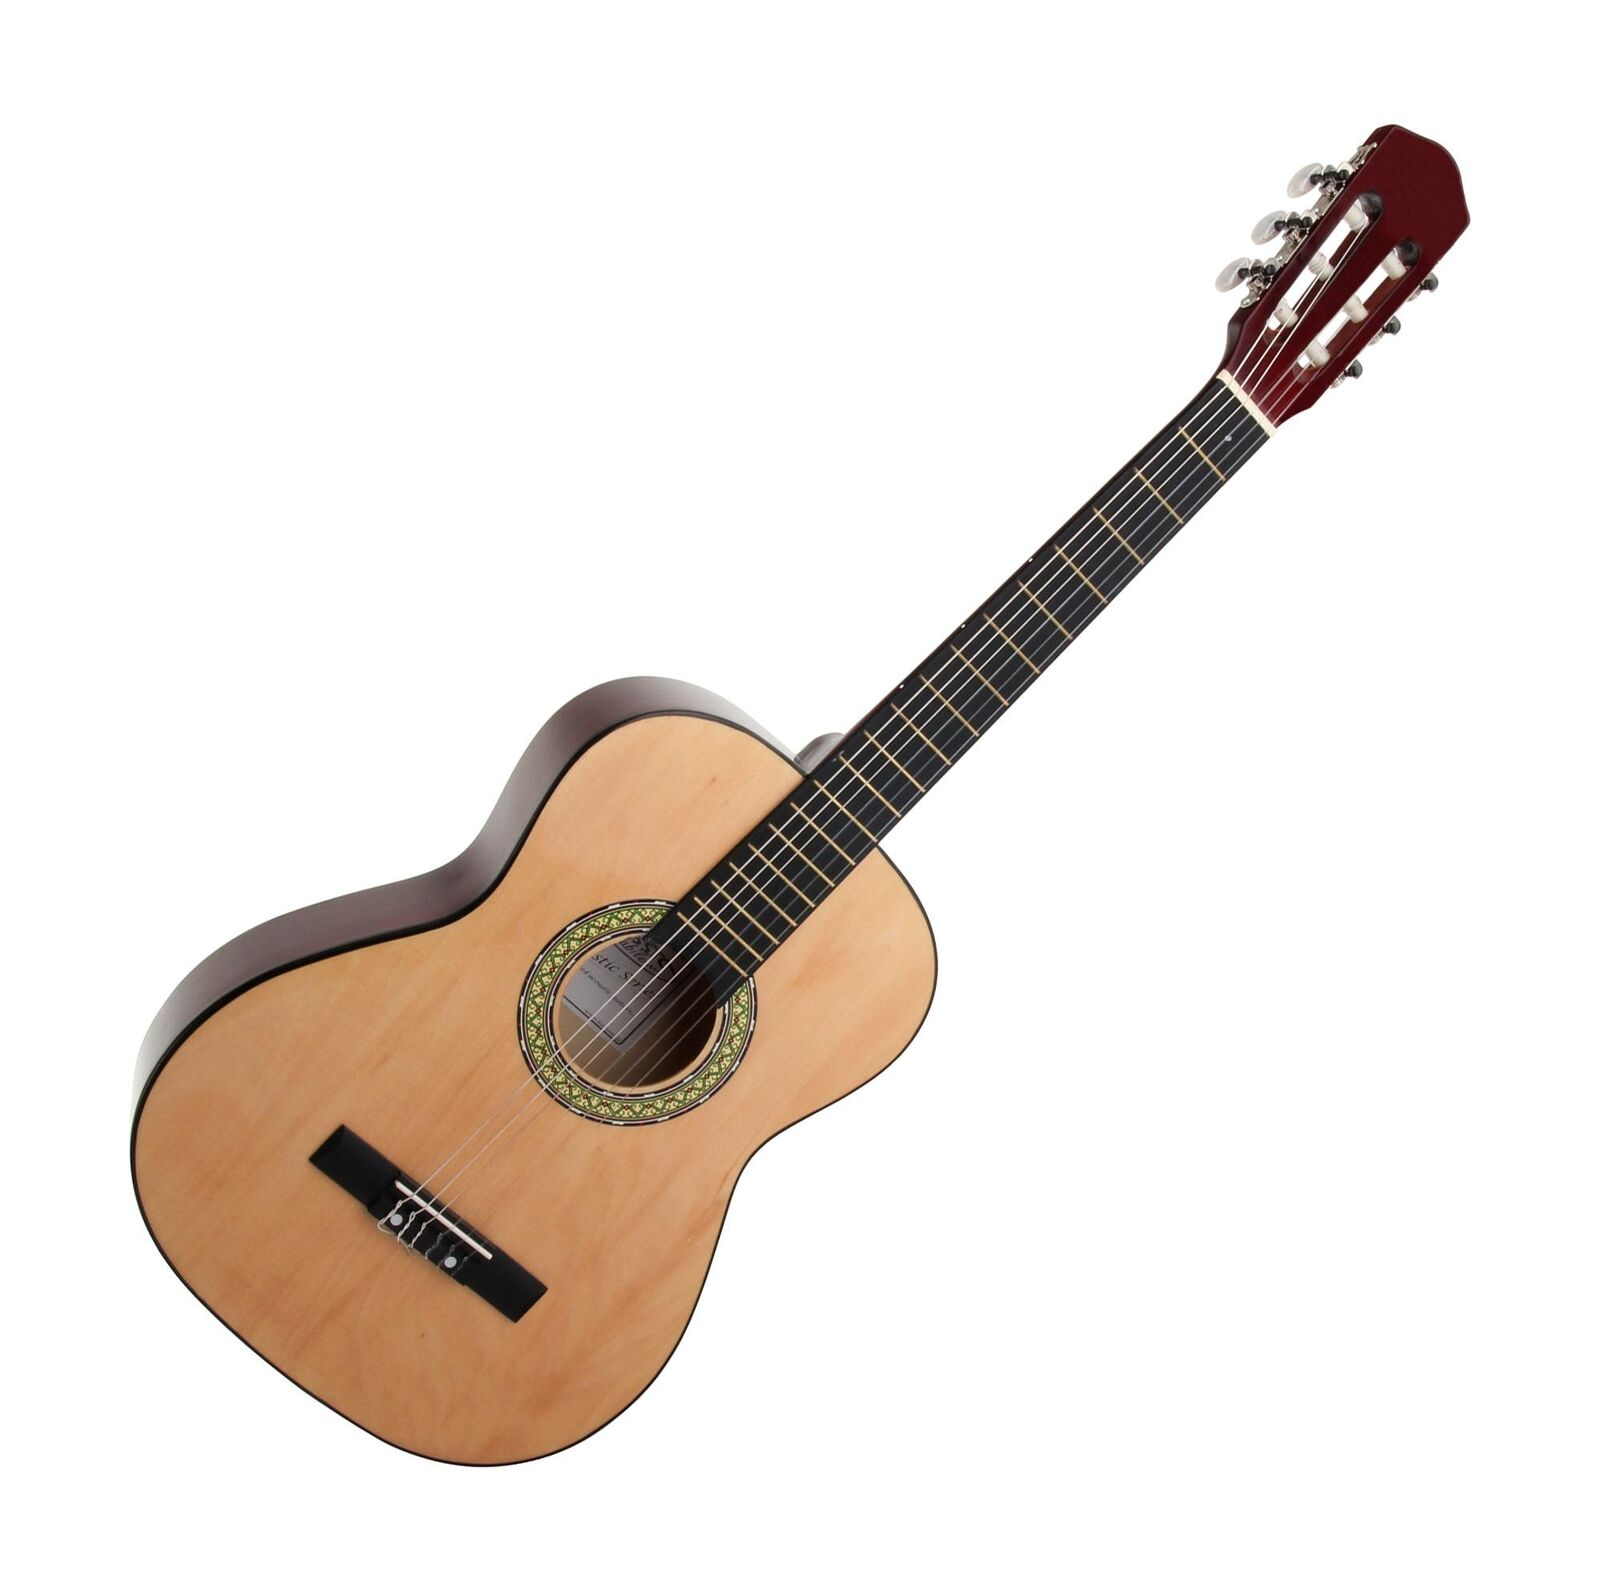 CLASSIC CANTABILE WOODEN ACOUSTIC GUITAR 3/4 SIZE CLASSICAL GUITAR GUITAR GUITAR NYLON STRINGS 239e2d